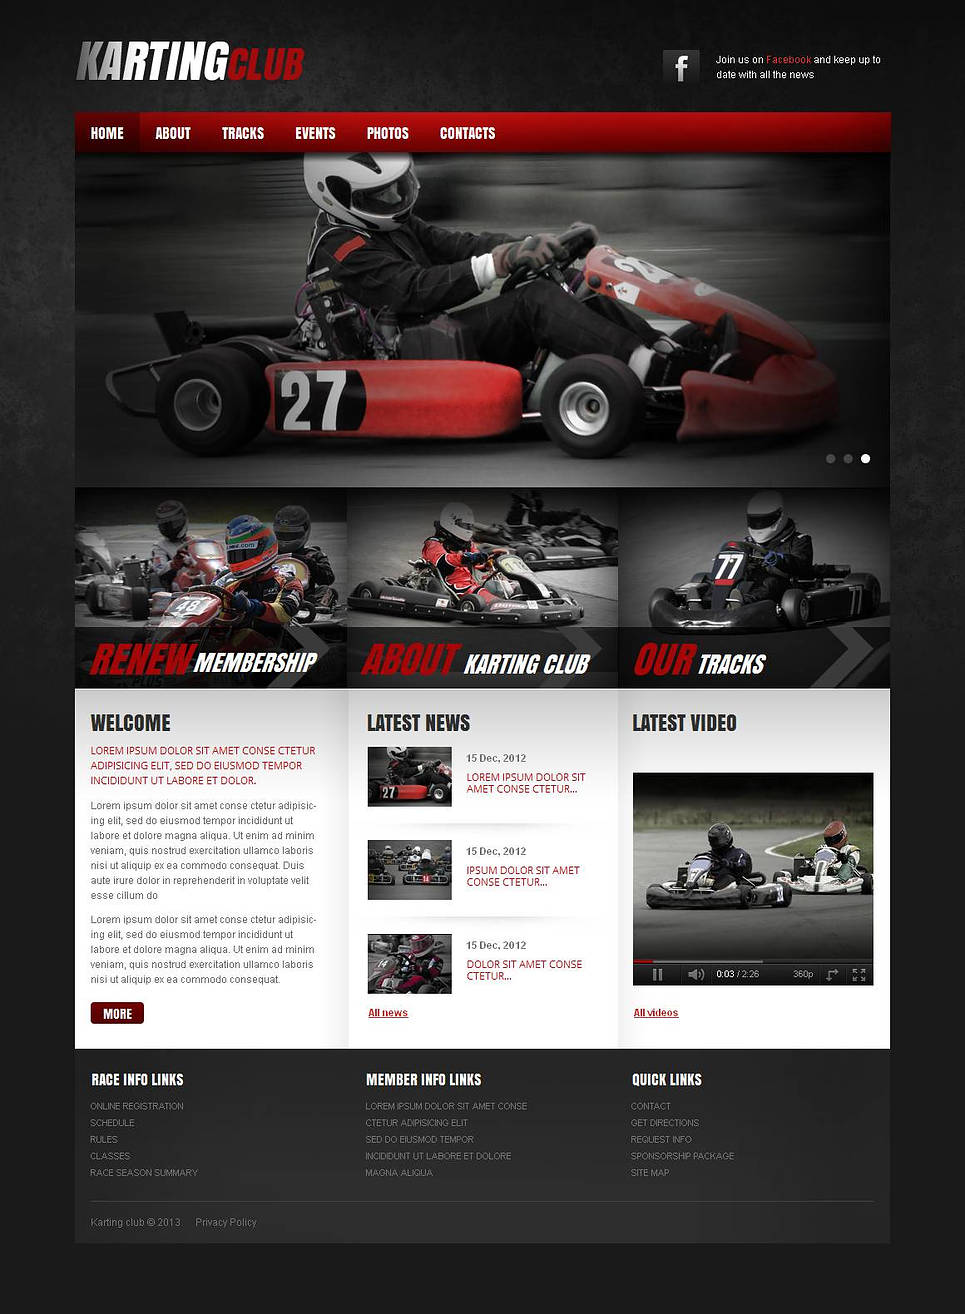 Karting Website Template with Black, Red and White Colors - image